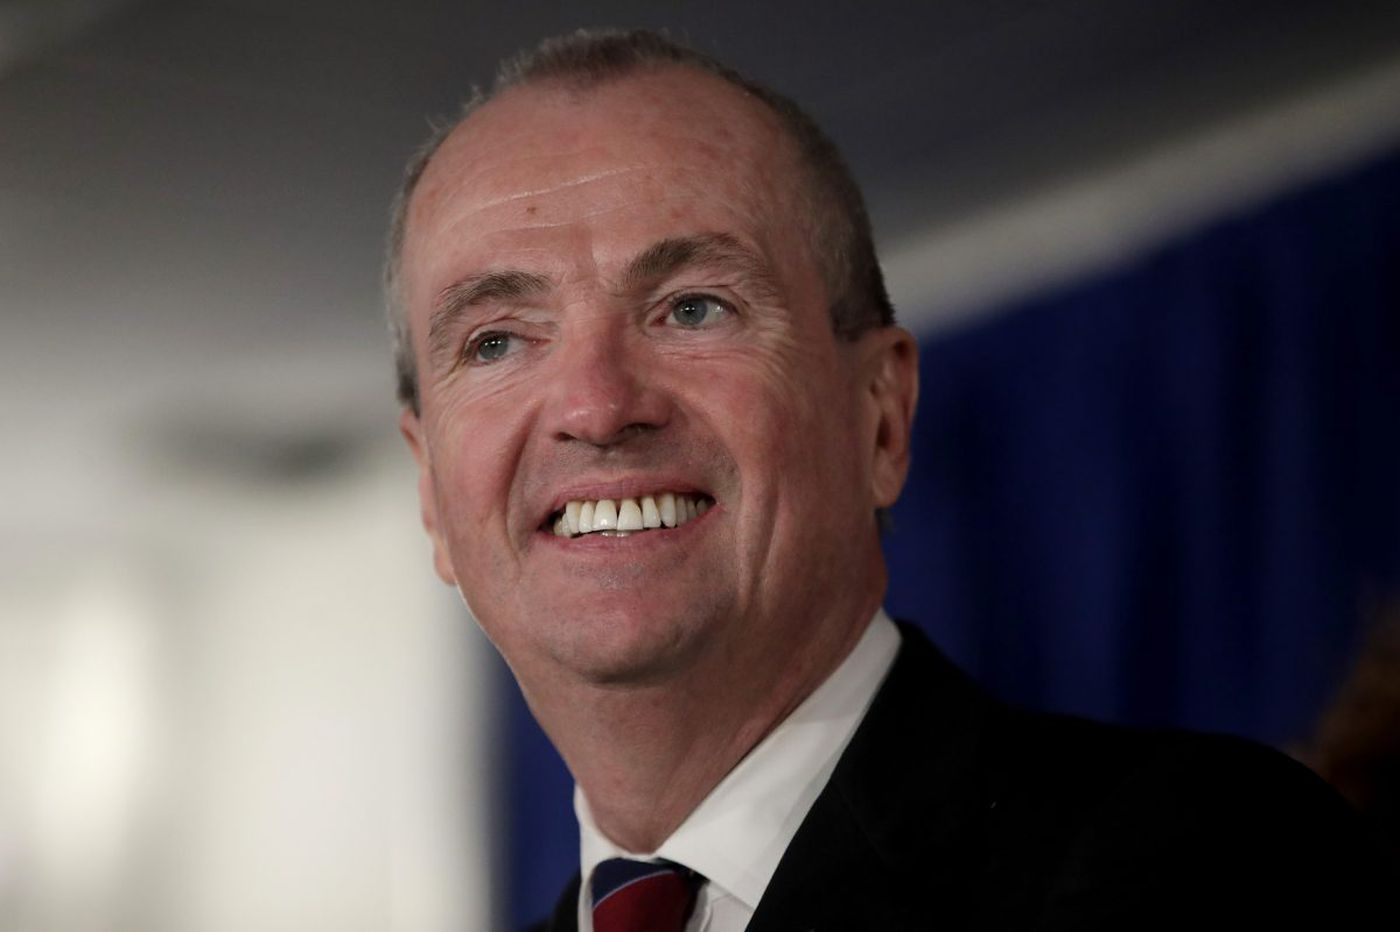 New Jersey to join multi-state lawsuit over federal tax reform